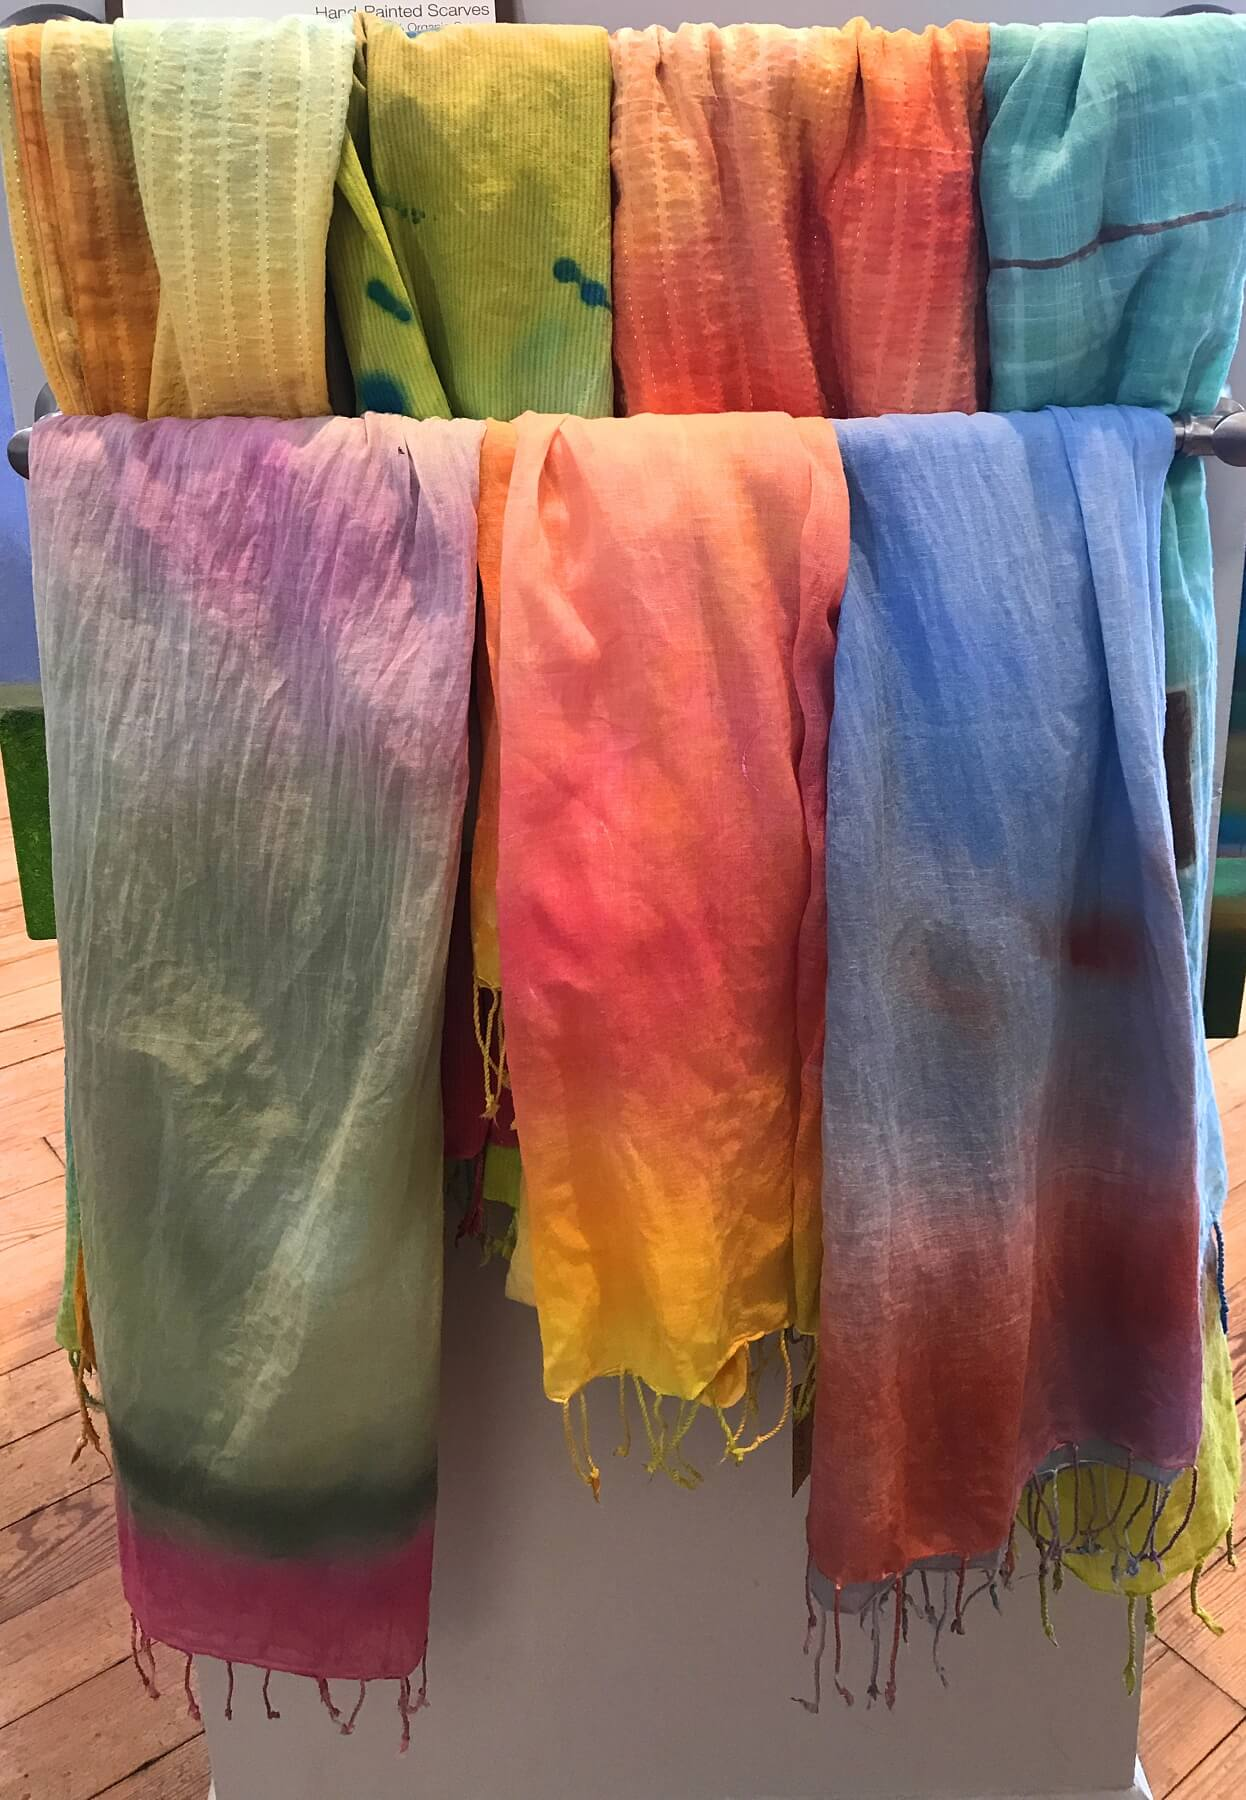 Hand-painted scarves, $65/short scarf, $85/long scarf, at T Clifton Art